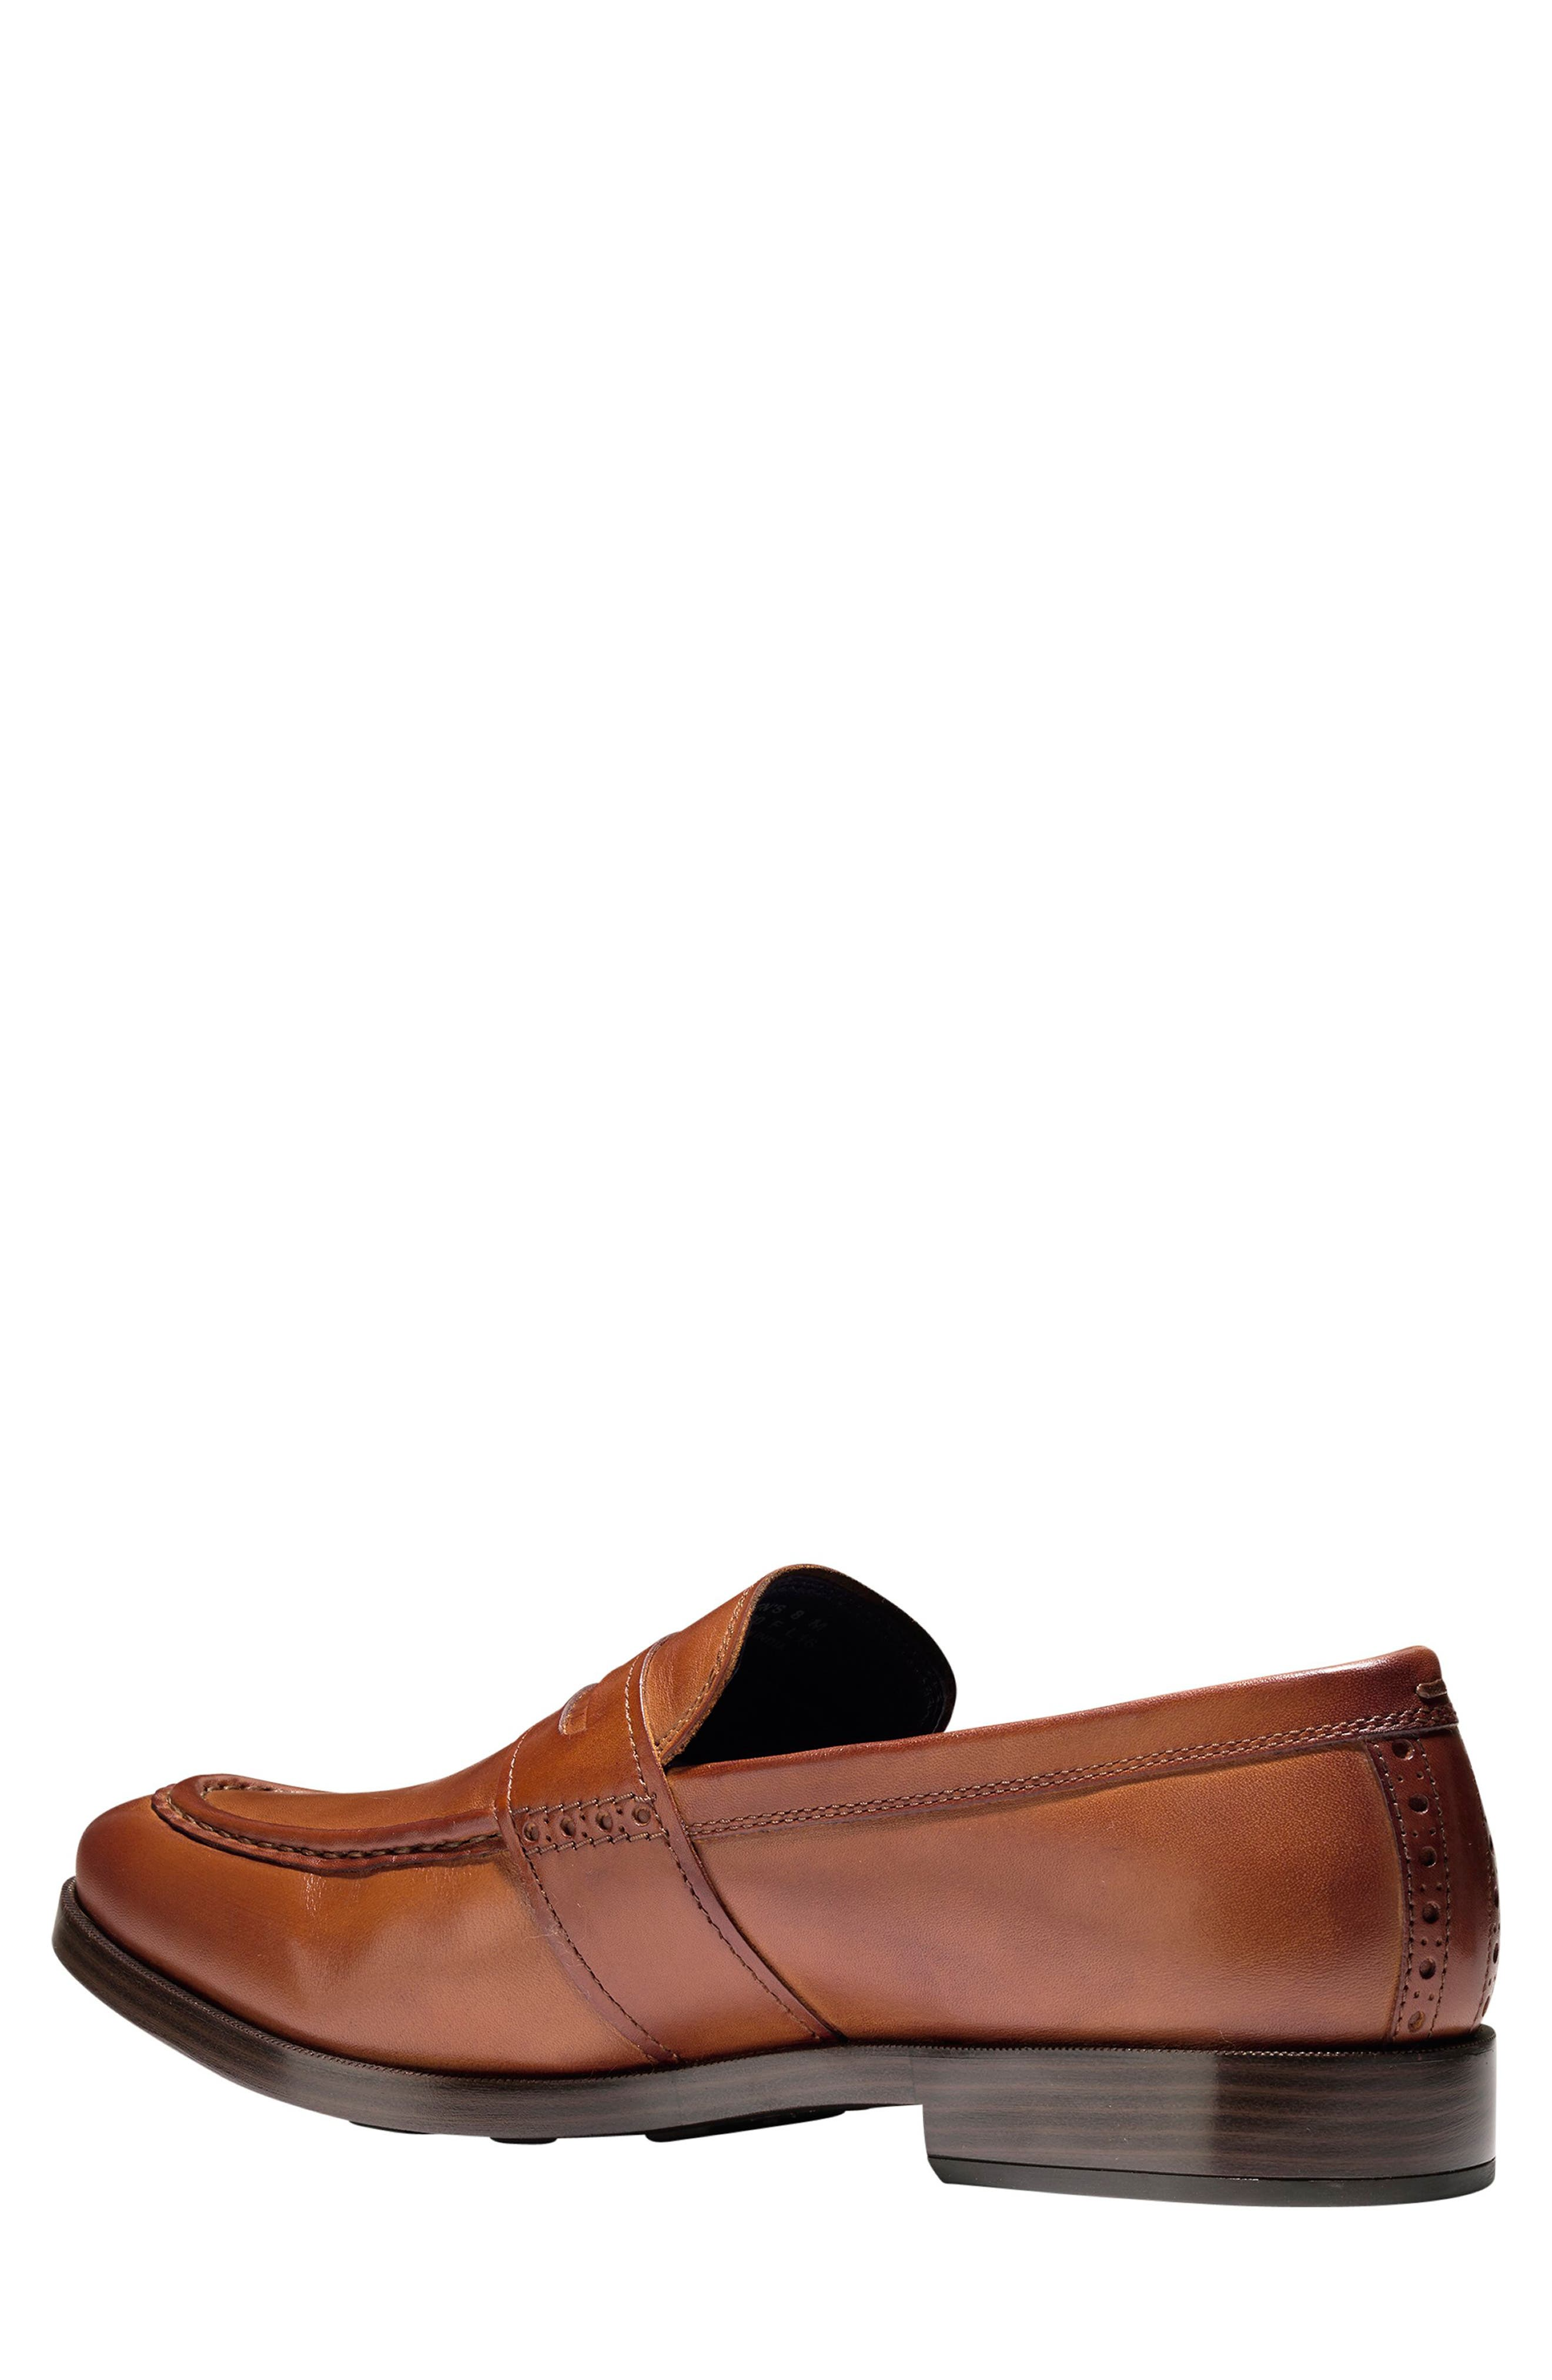 COLE HAAN, Jefferson Grand Penny Loafer, Alternate thumbnail 2, color, BRITISH TAN LEATHER